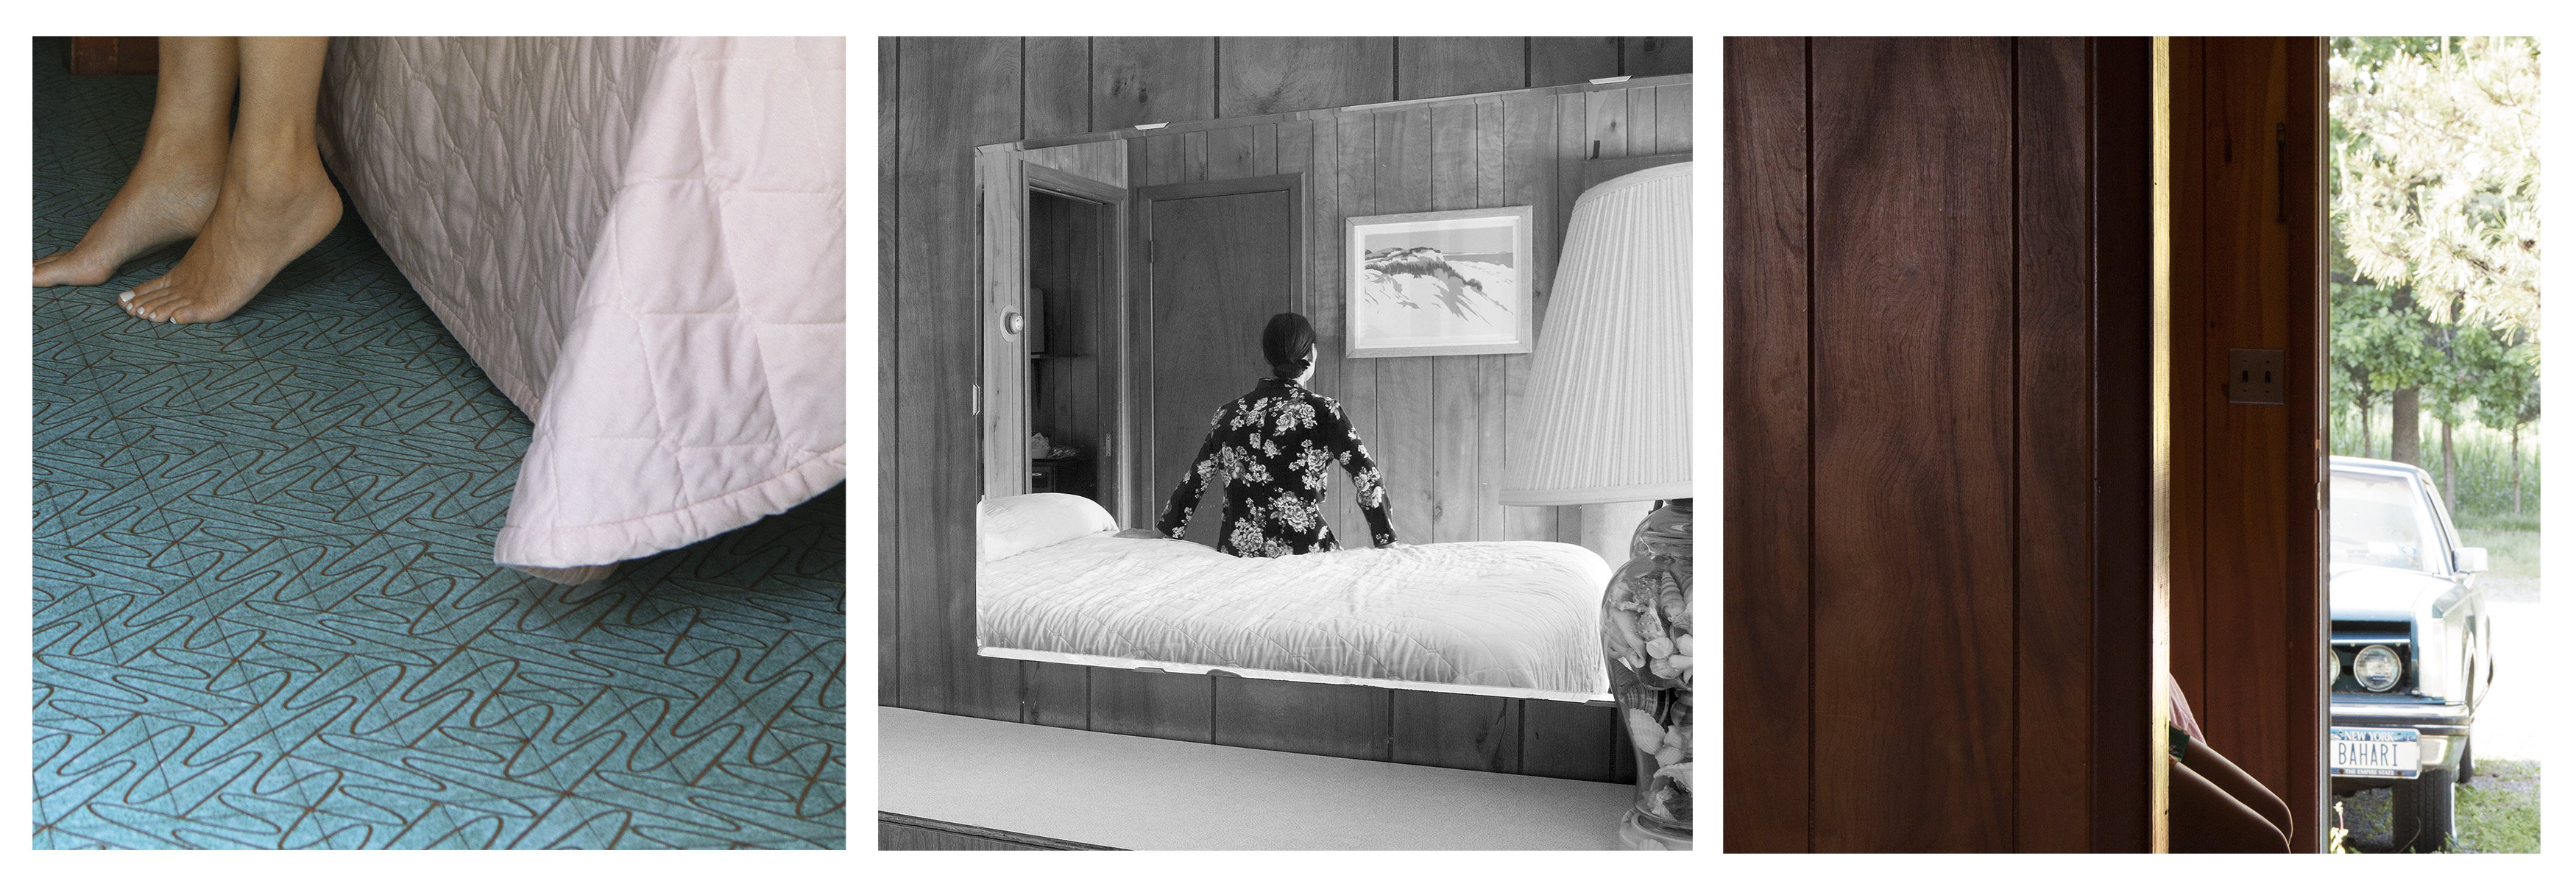 » Exposure #123.8, Greenport, N.Y., Silversands Motel, 1400 Silvermere Road, 06.12.17, 5:58 pm